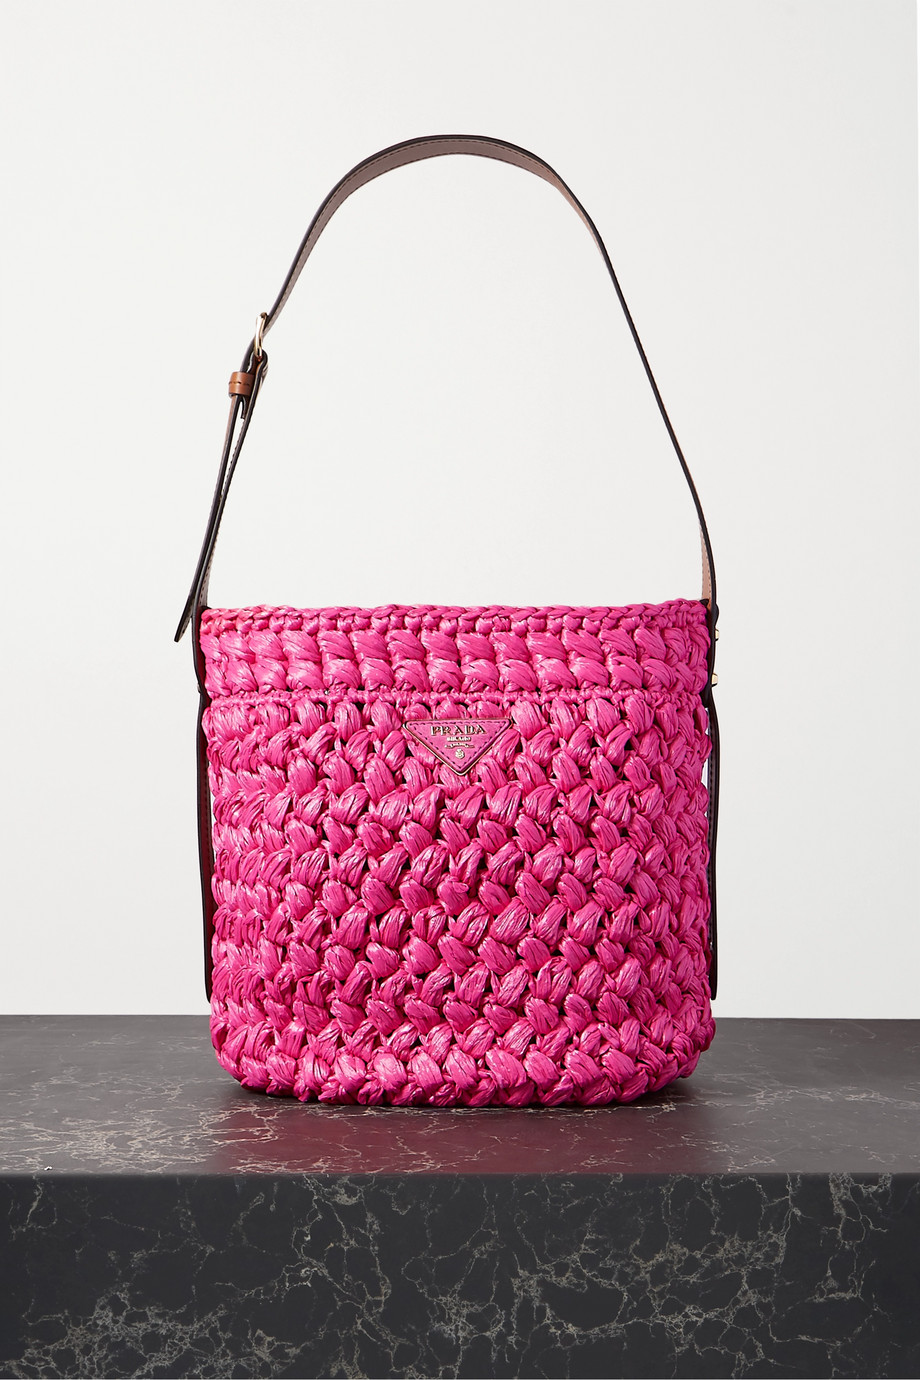 Prada Medium leather-trimmed raffia tote